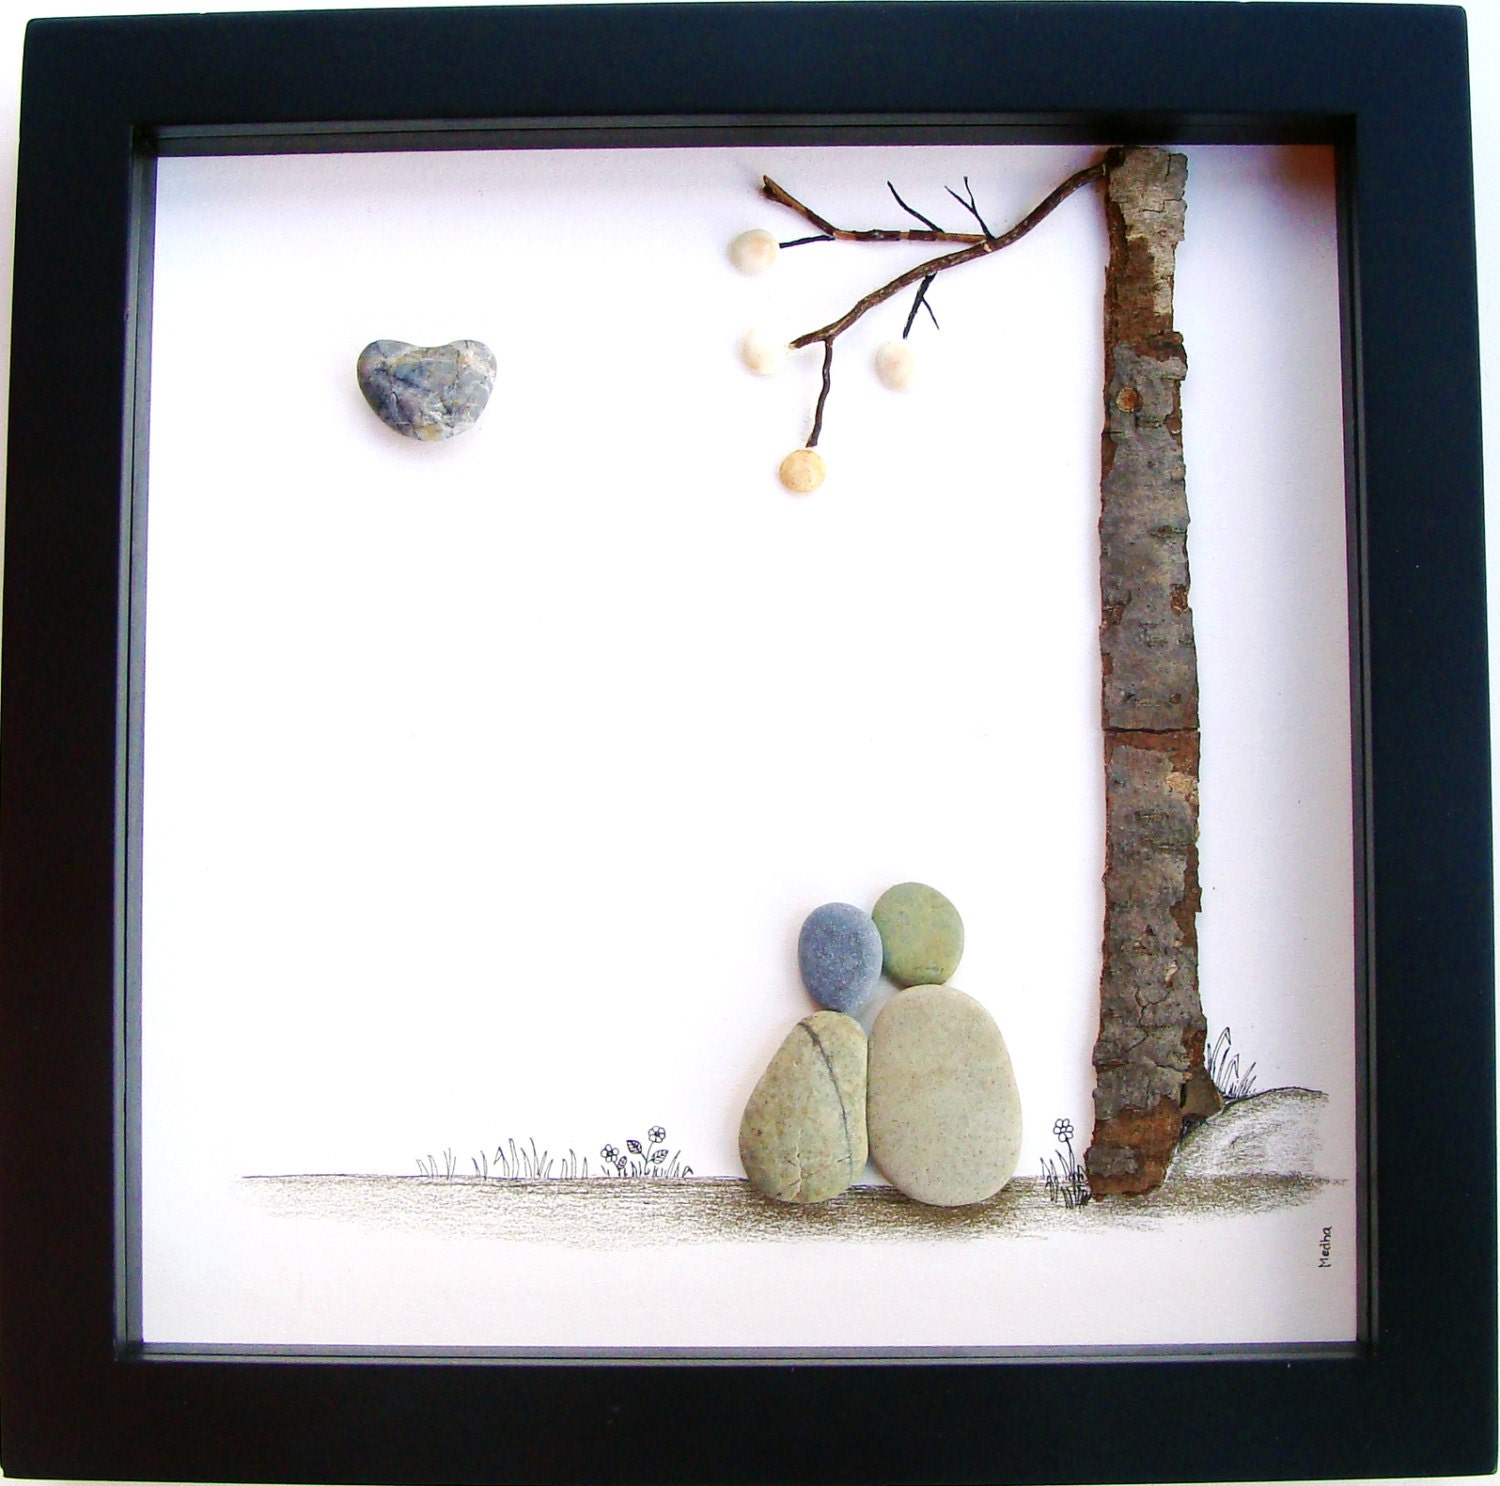 Special Gift For Wedding Anniversary: Unique Engagement Gift Wedding Gift Anniversary Gift Christmas